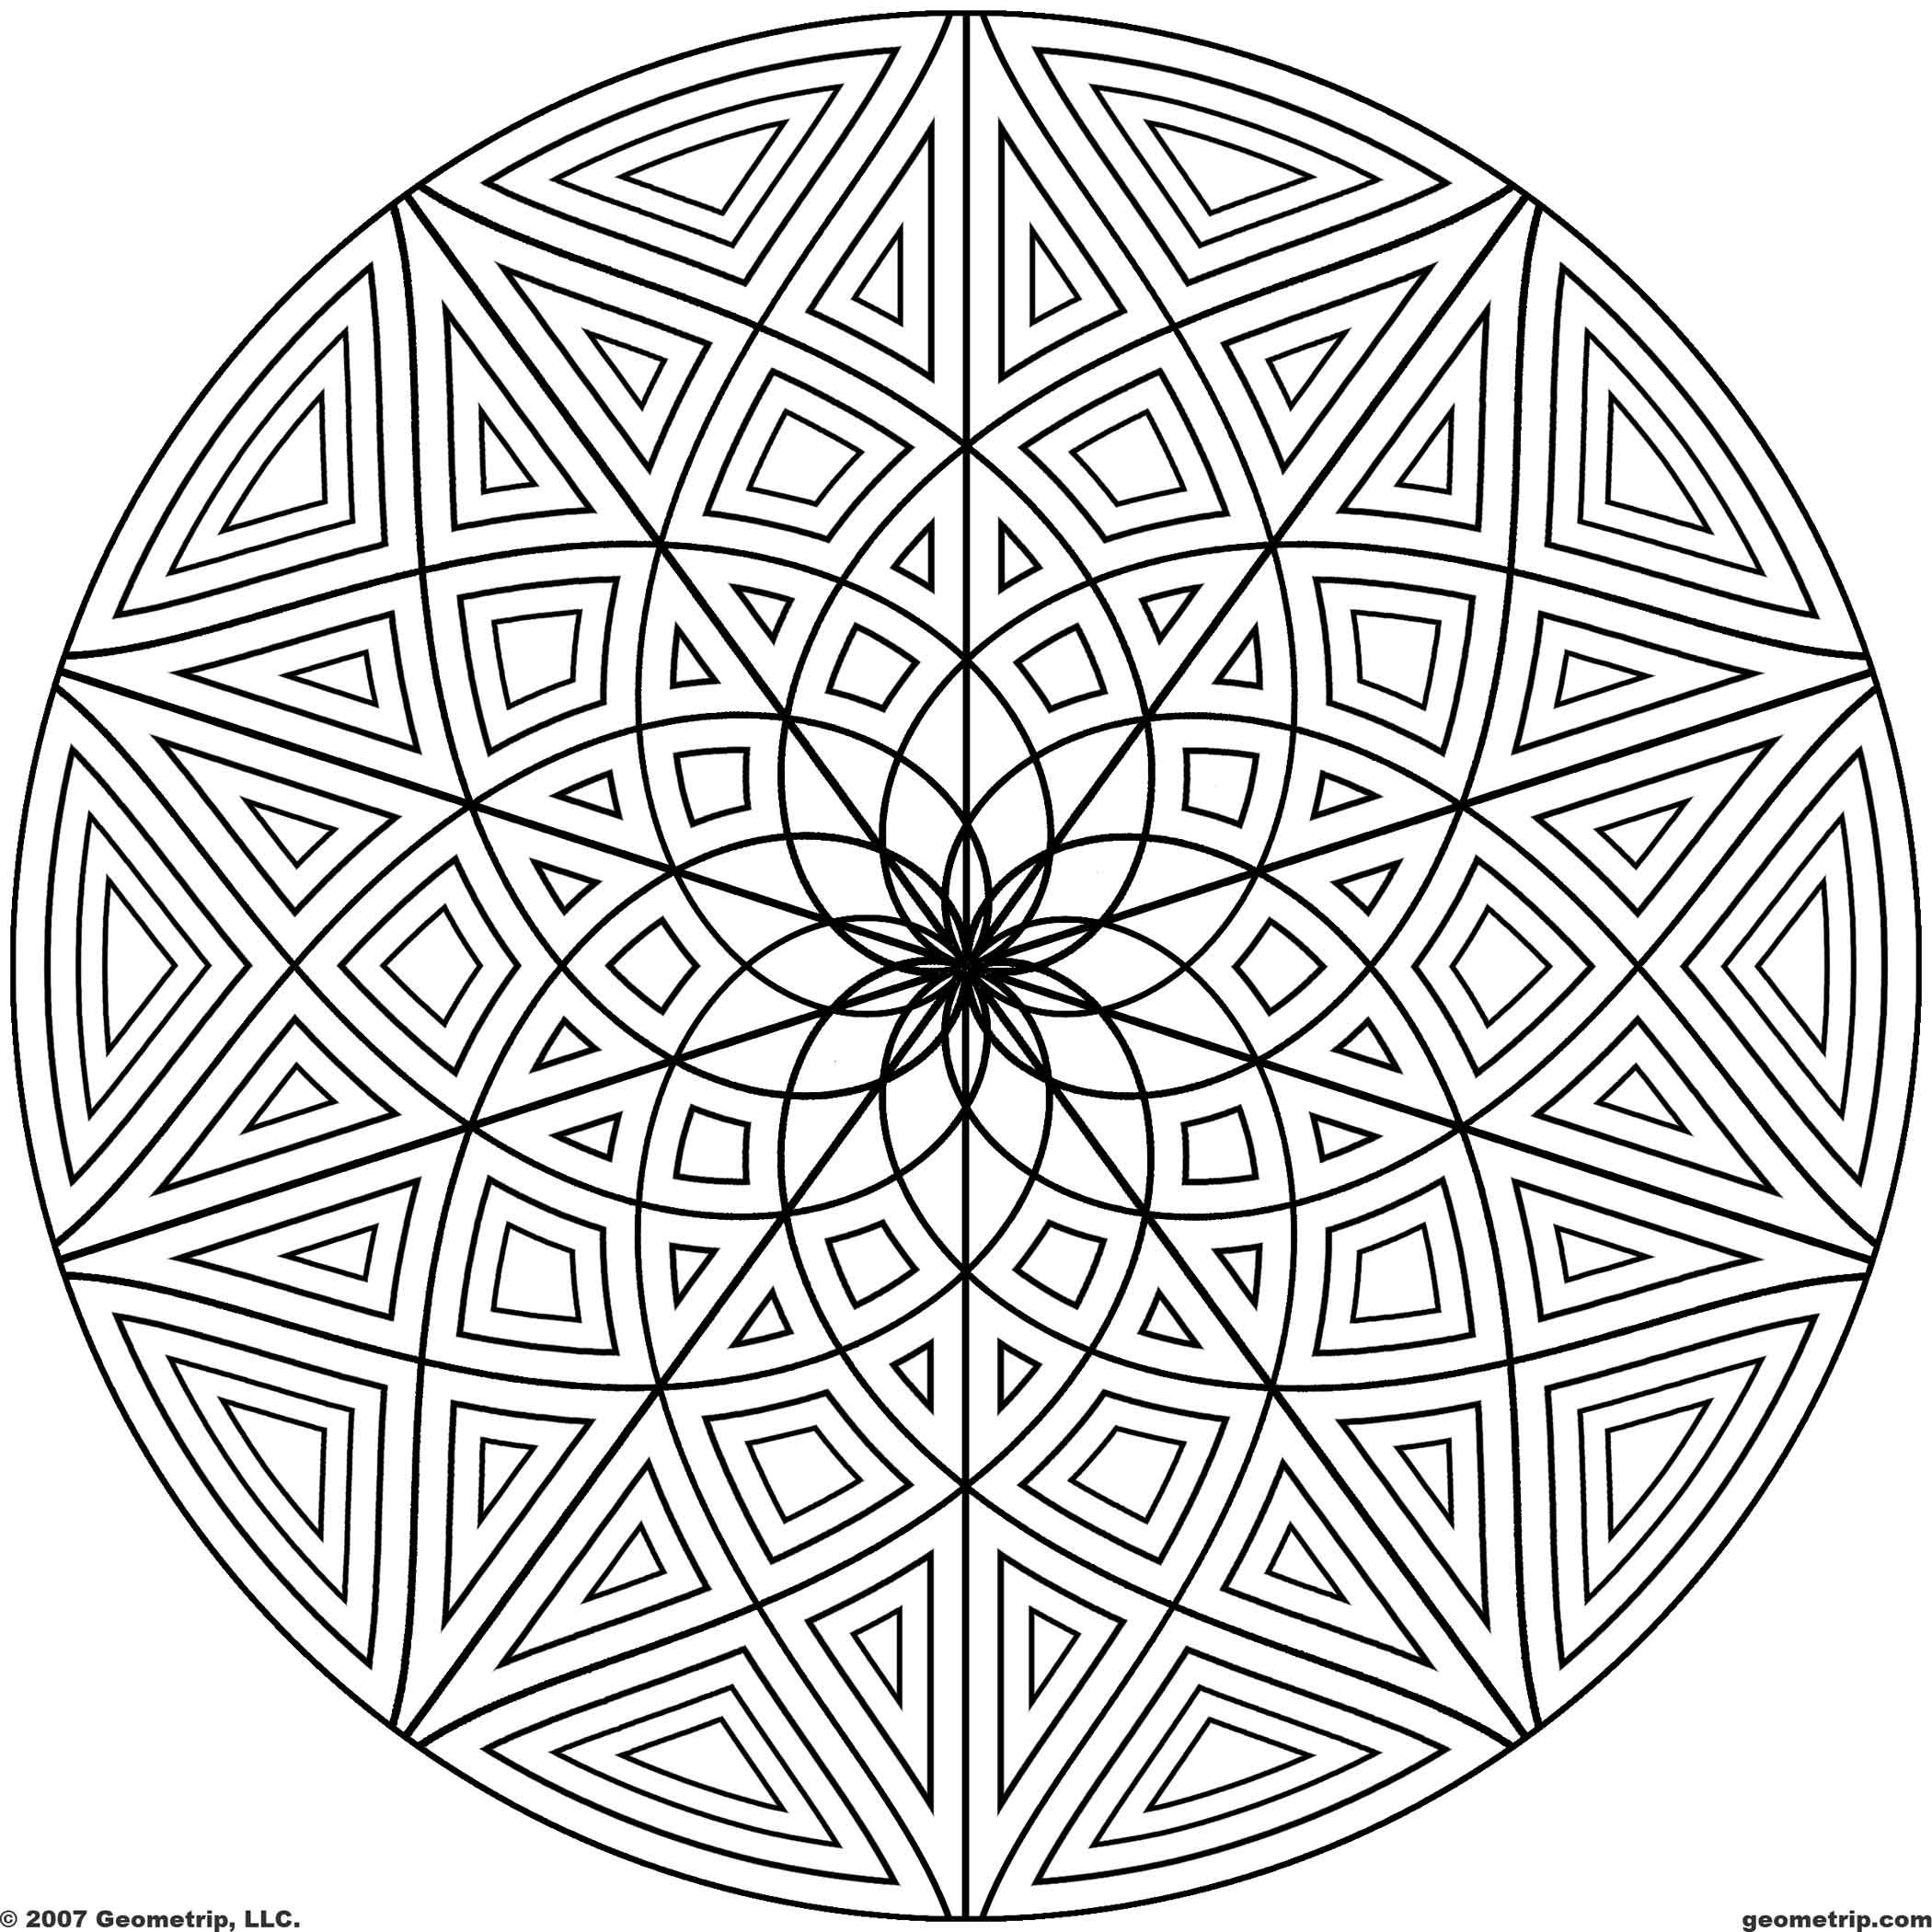 Stained Glass Window Coloring Pages in addition 71776187783891221 besides 4 also Mandala Coloring Pages in addition Grids. on mosaics for kids free patterns